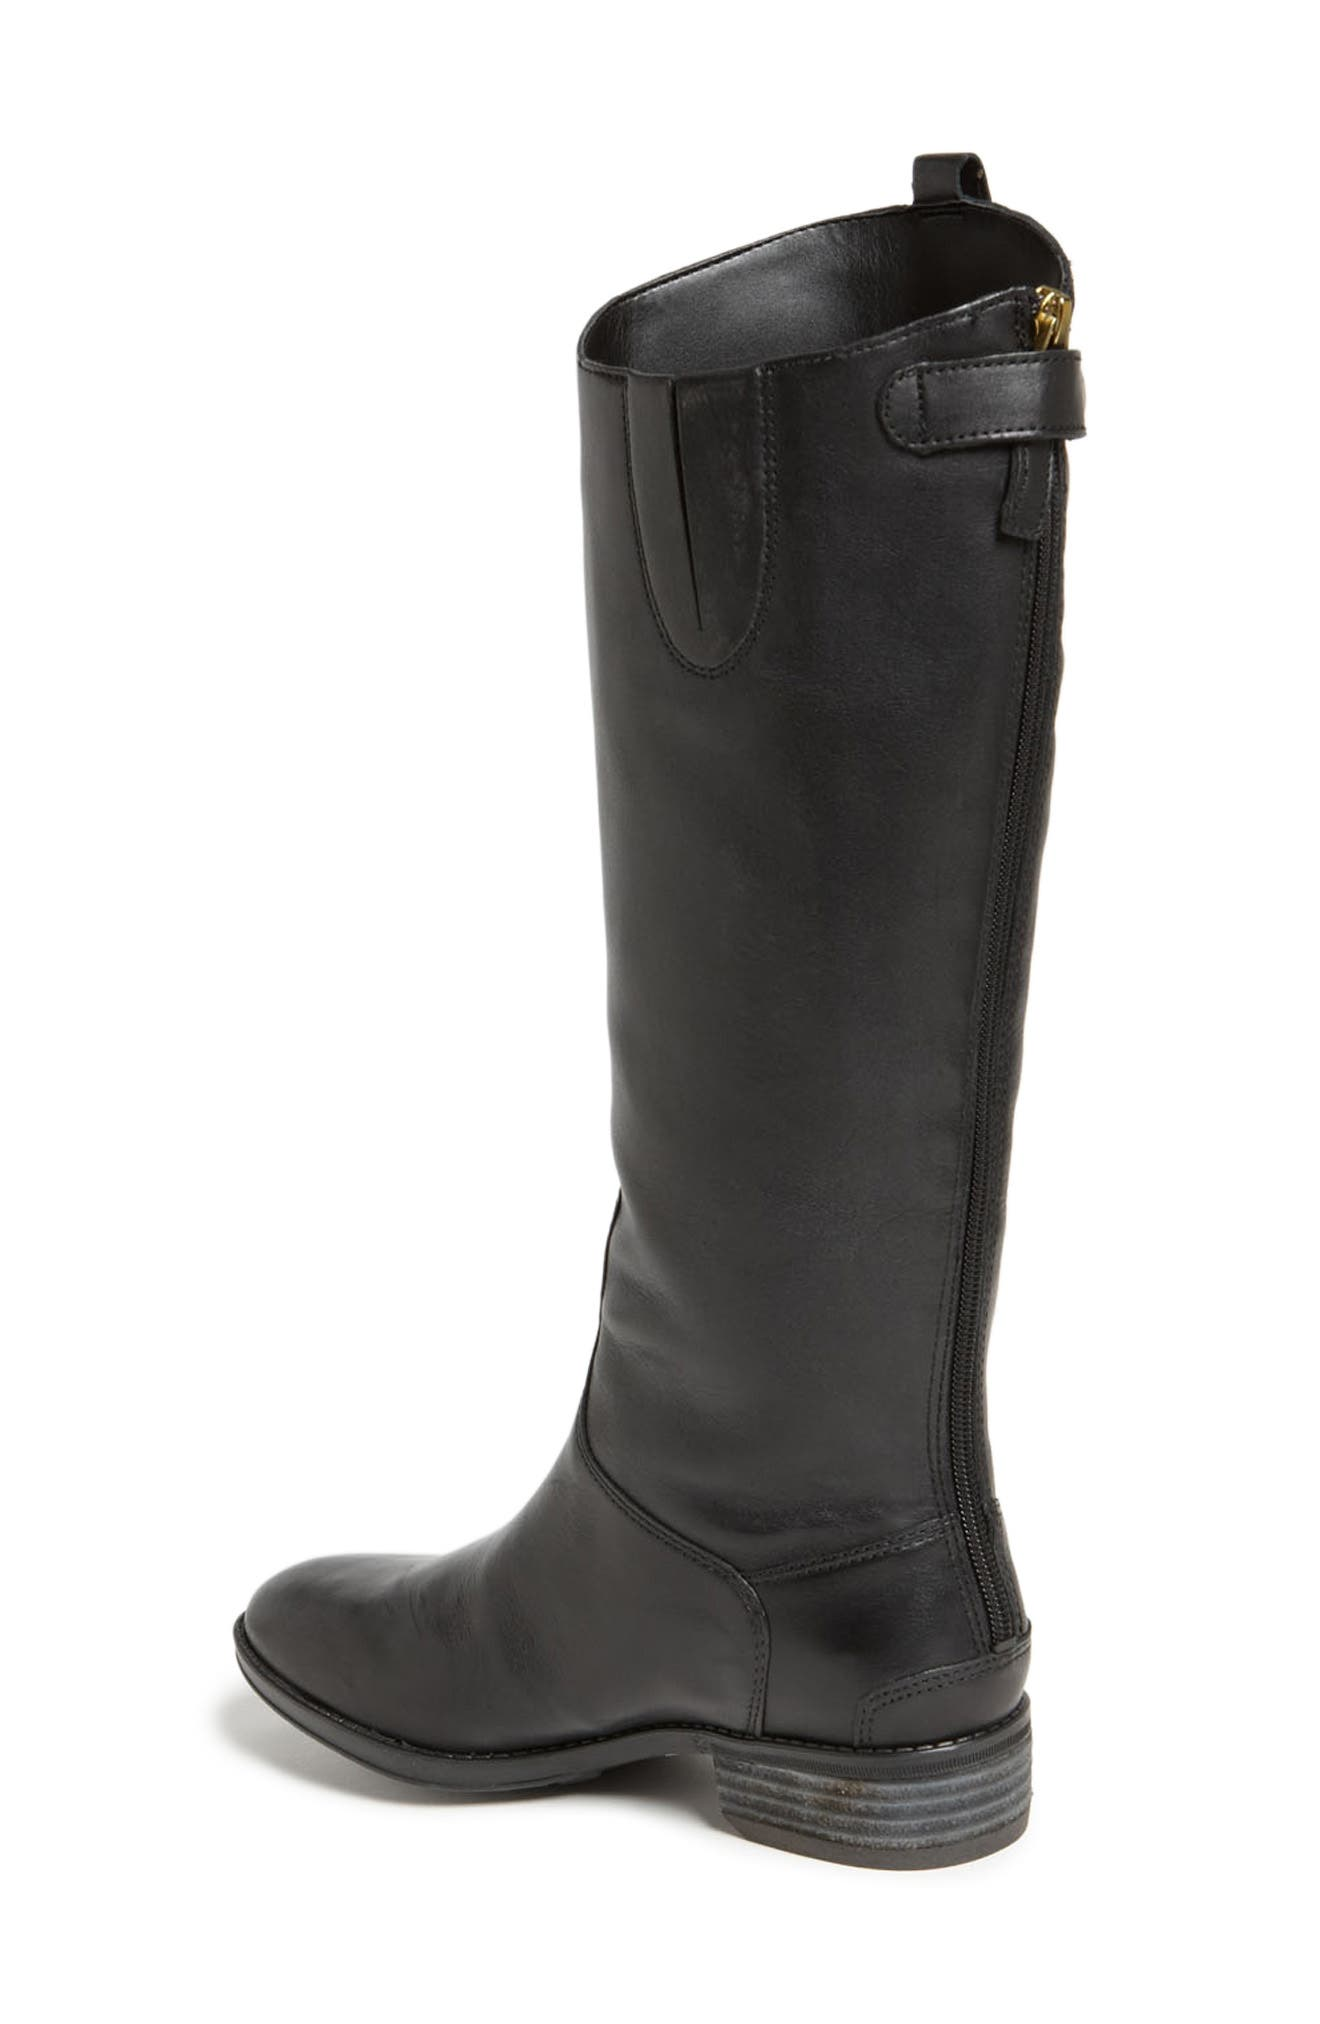 SAM EDELMAN, Penny Boot, Alternate thumbnail 2, color, BLACK WIDE CALF